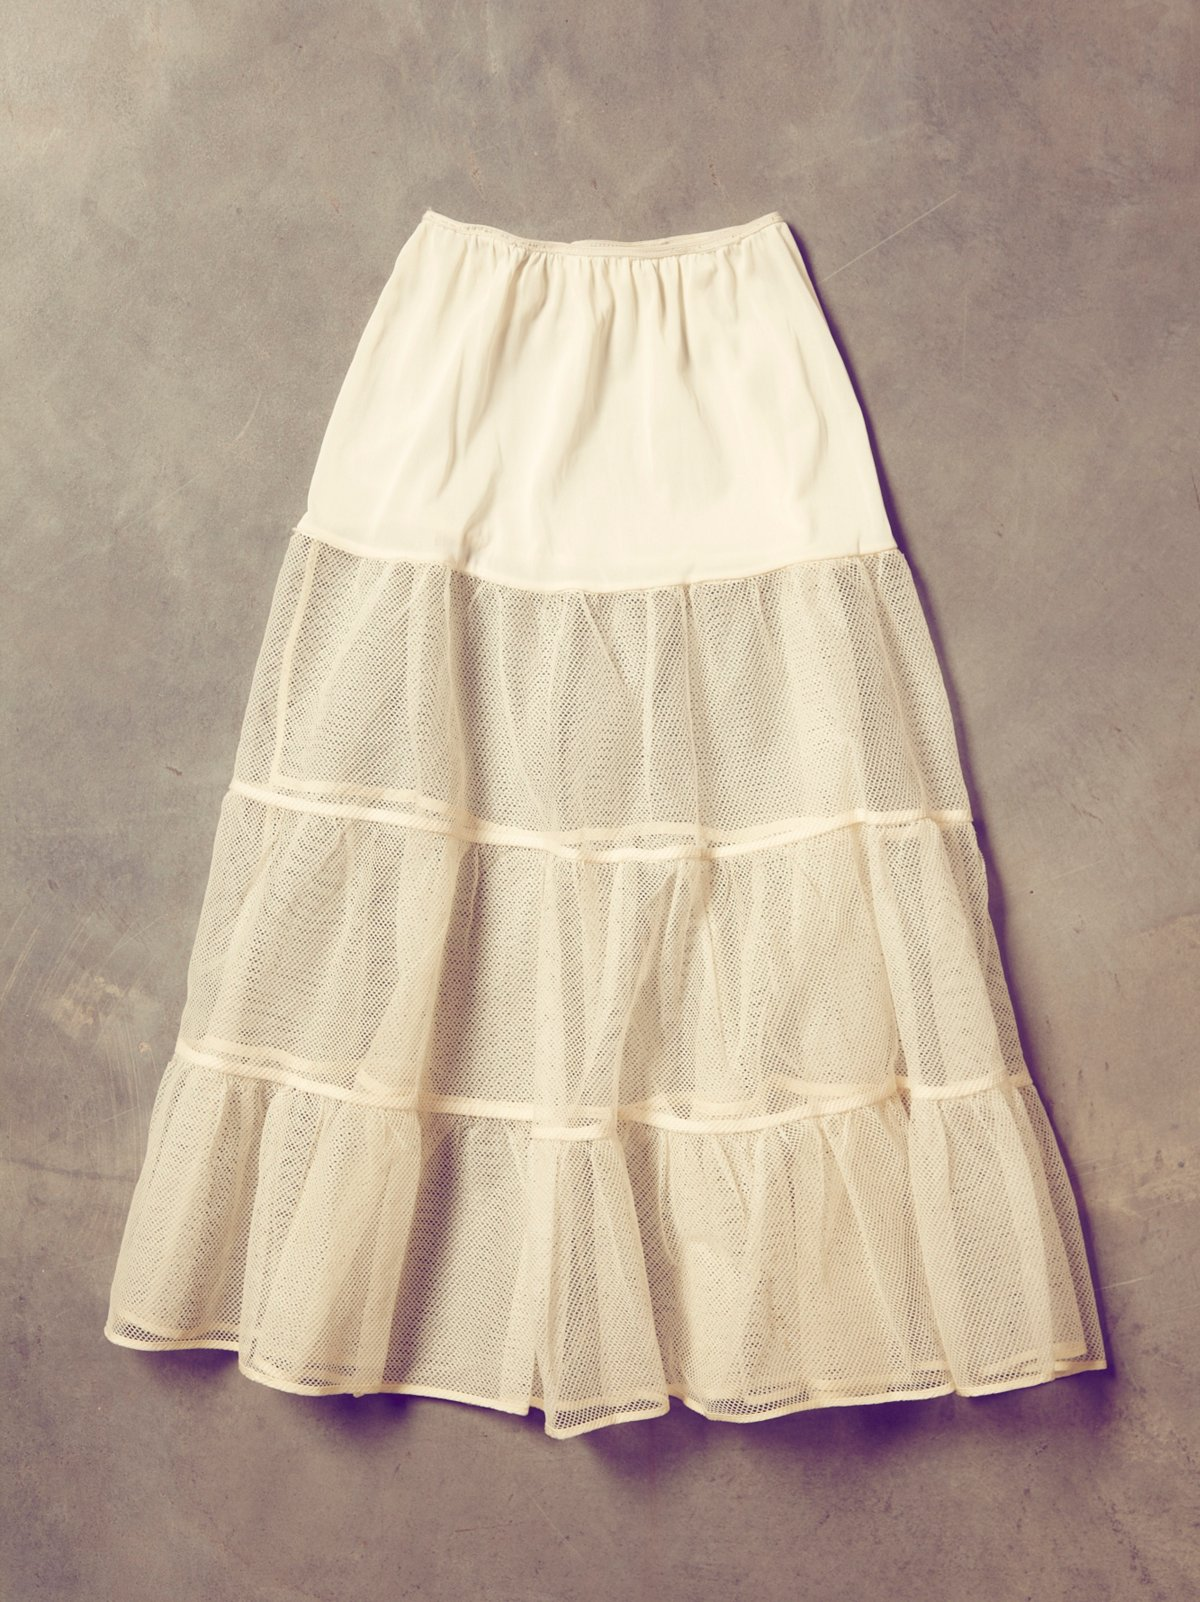 Vintage 50s Crinolin Dance Skirt